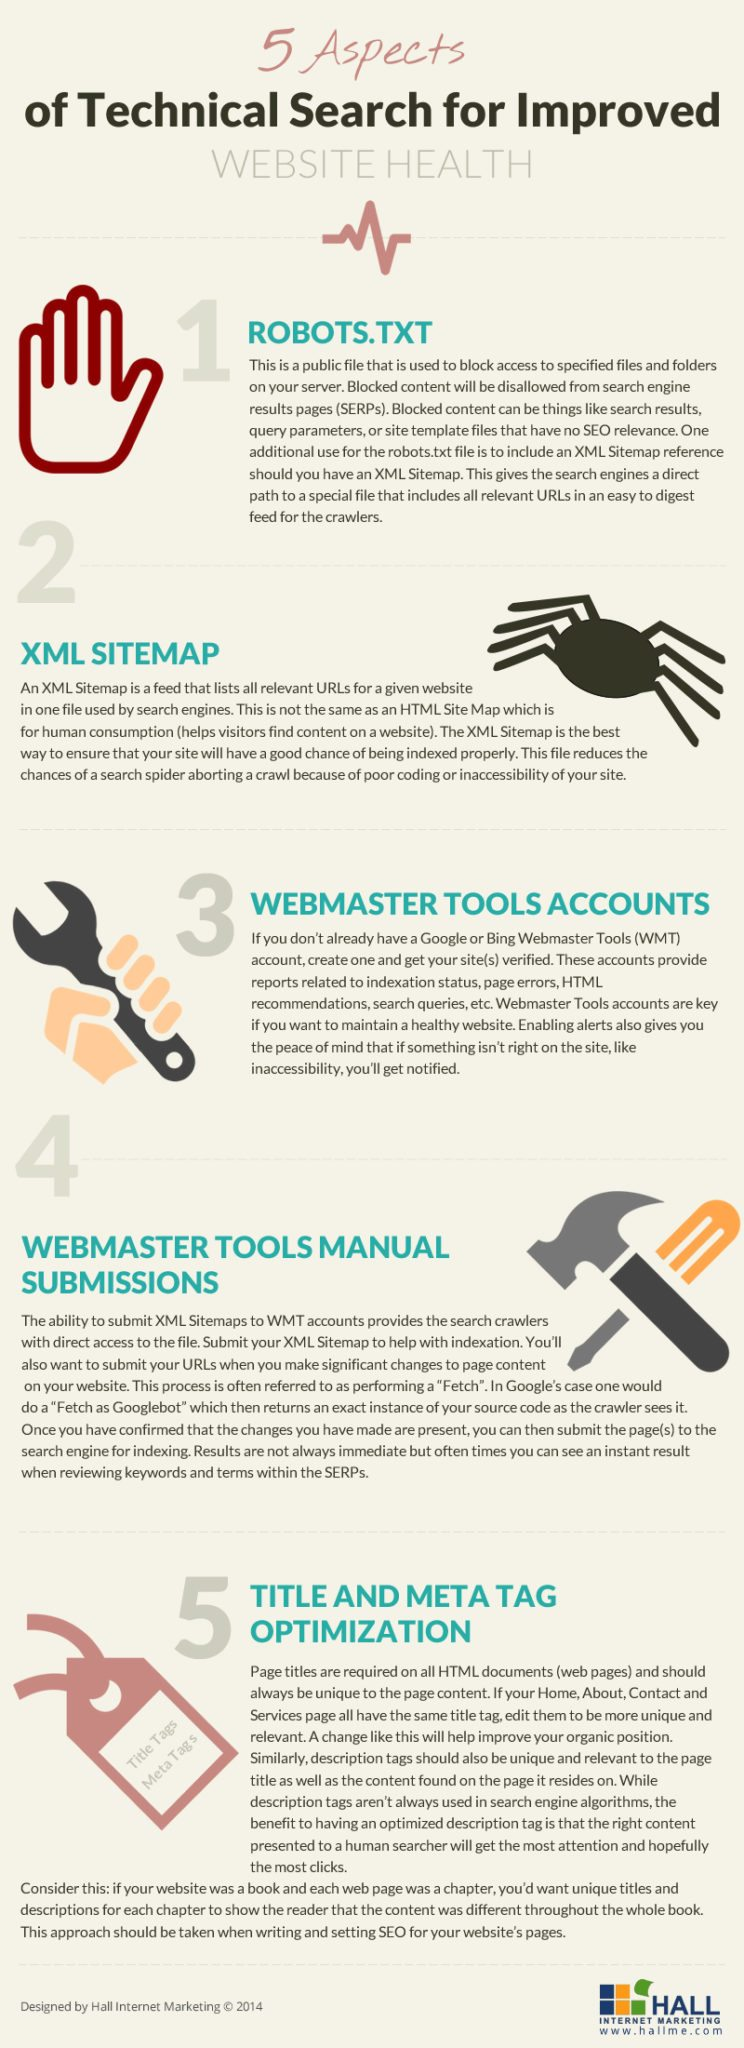 Infographic for Website Health by Hall Internet Marketing